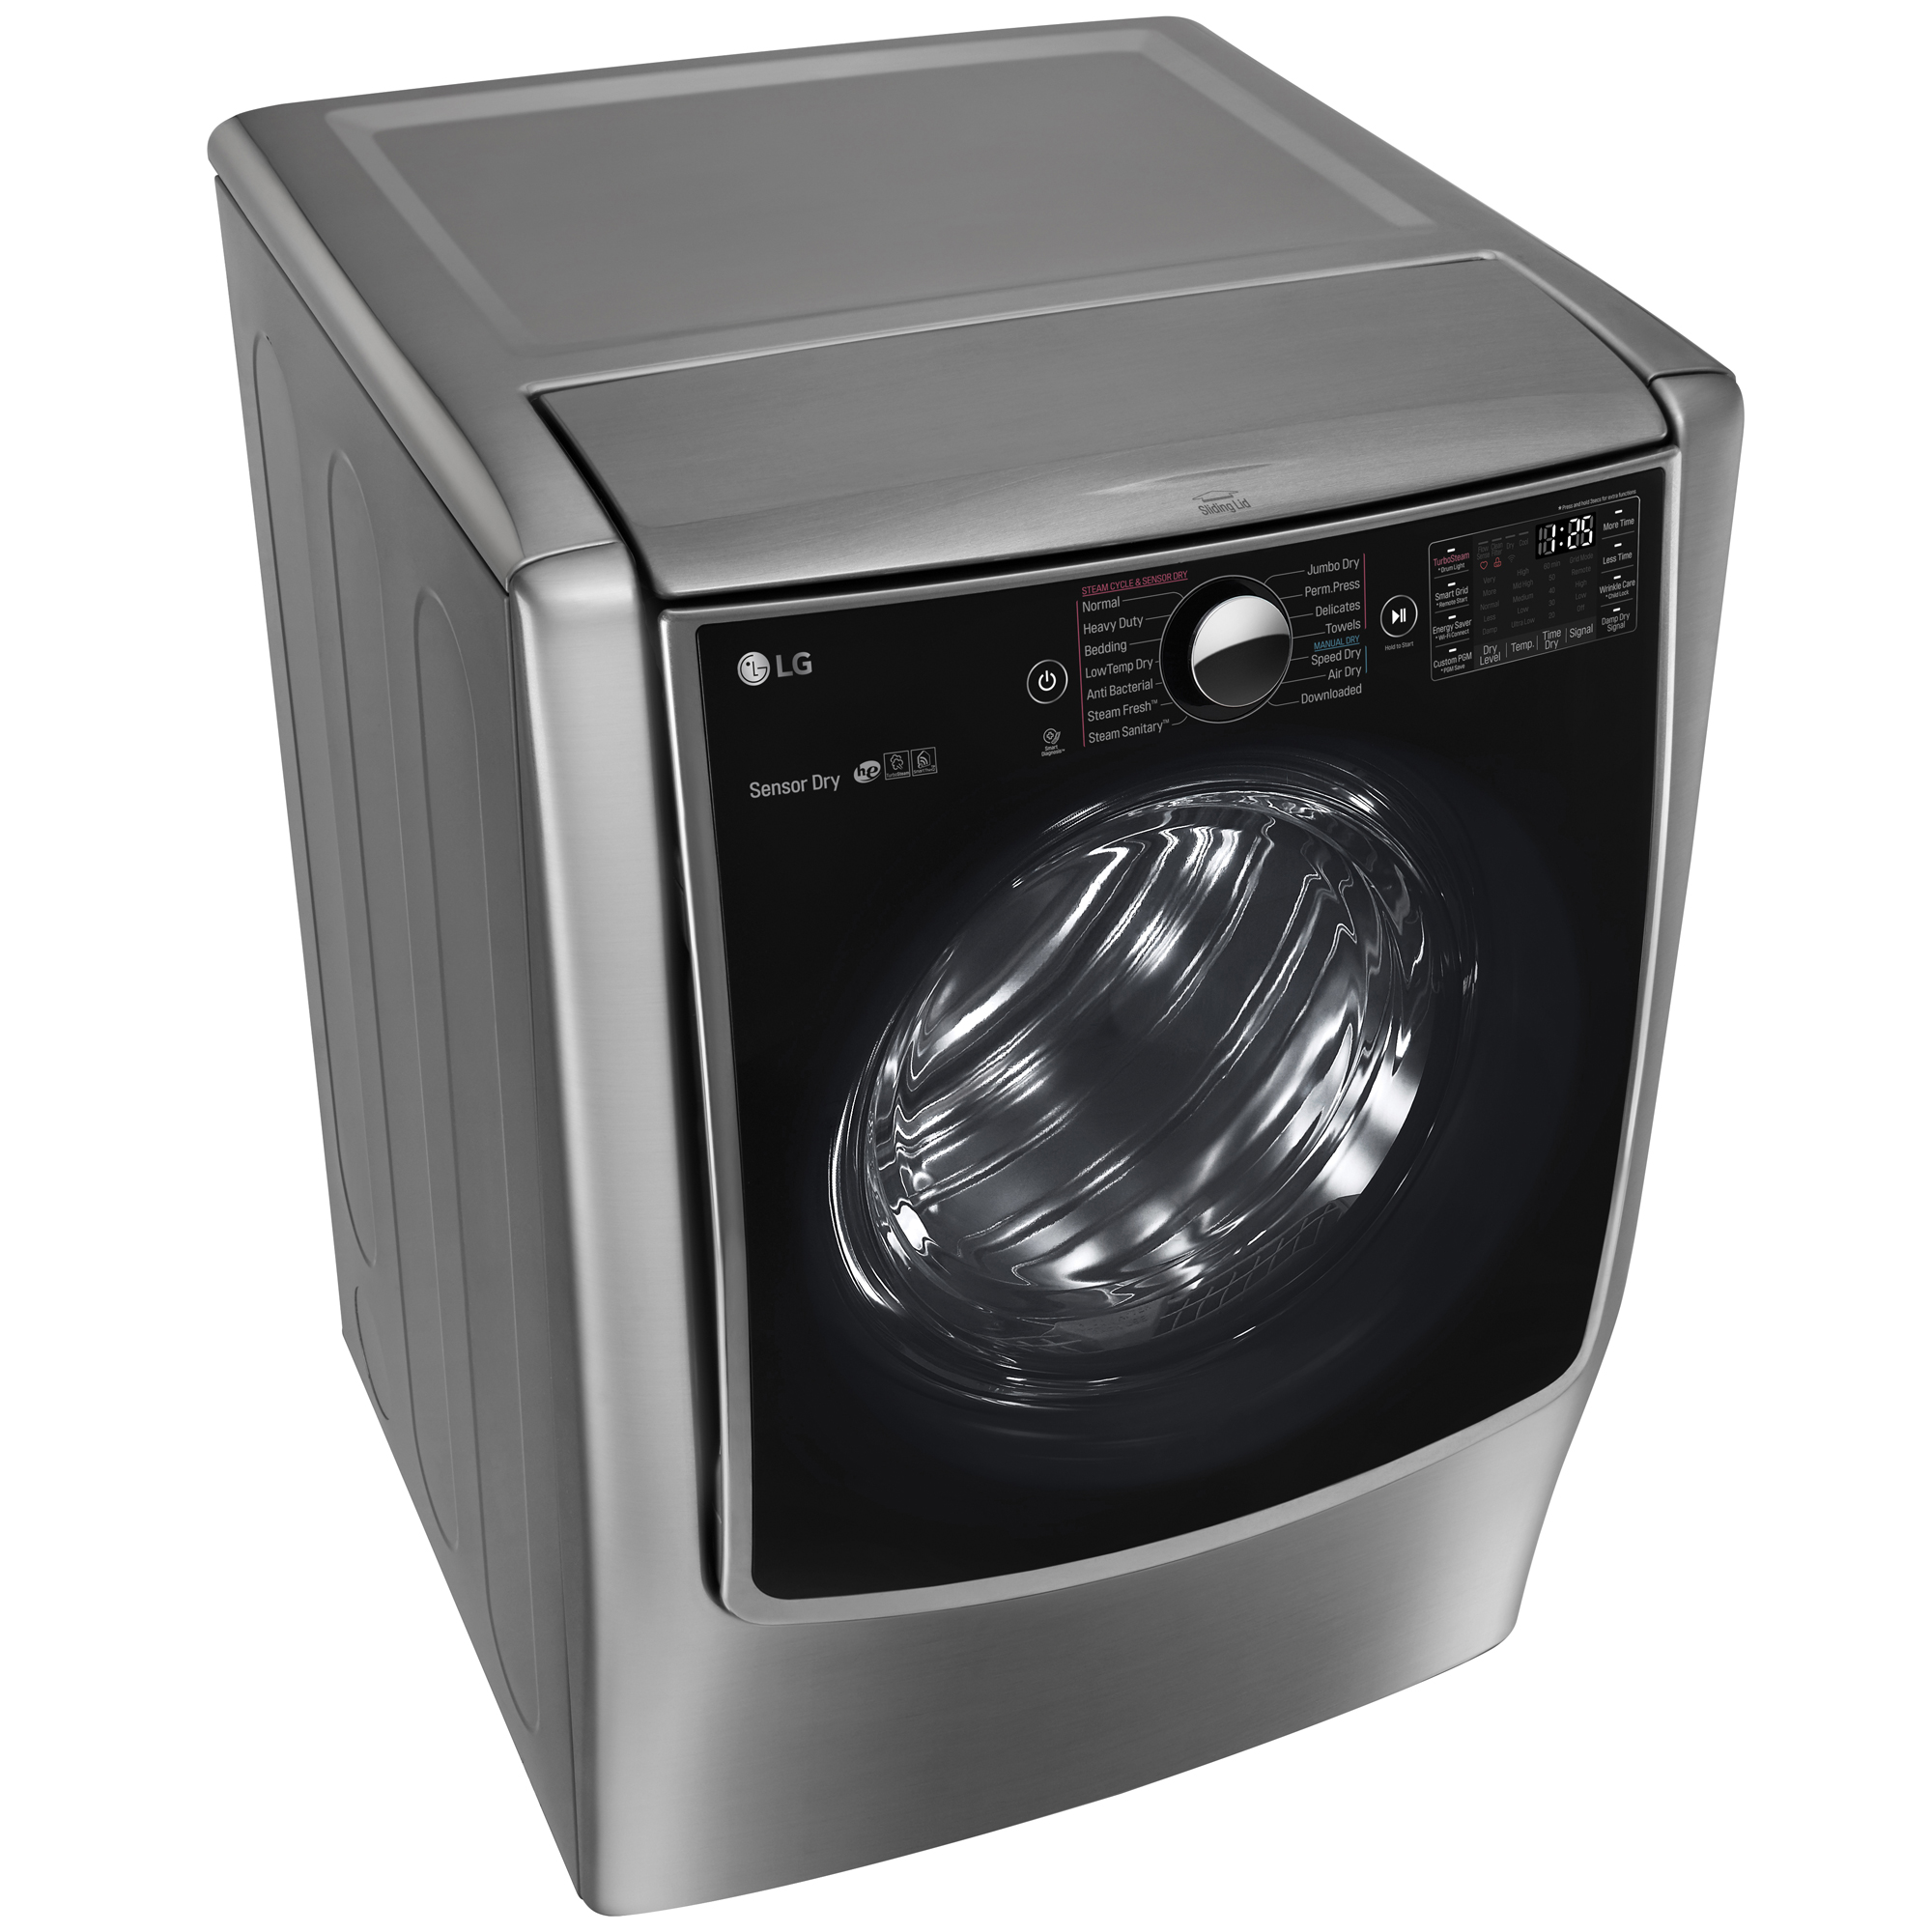 LG DLGX9001V 9.0 cu. ft. Mega Capacity Gas Dryer w/ TurboSteam™ – Graphite Steel